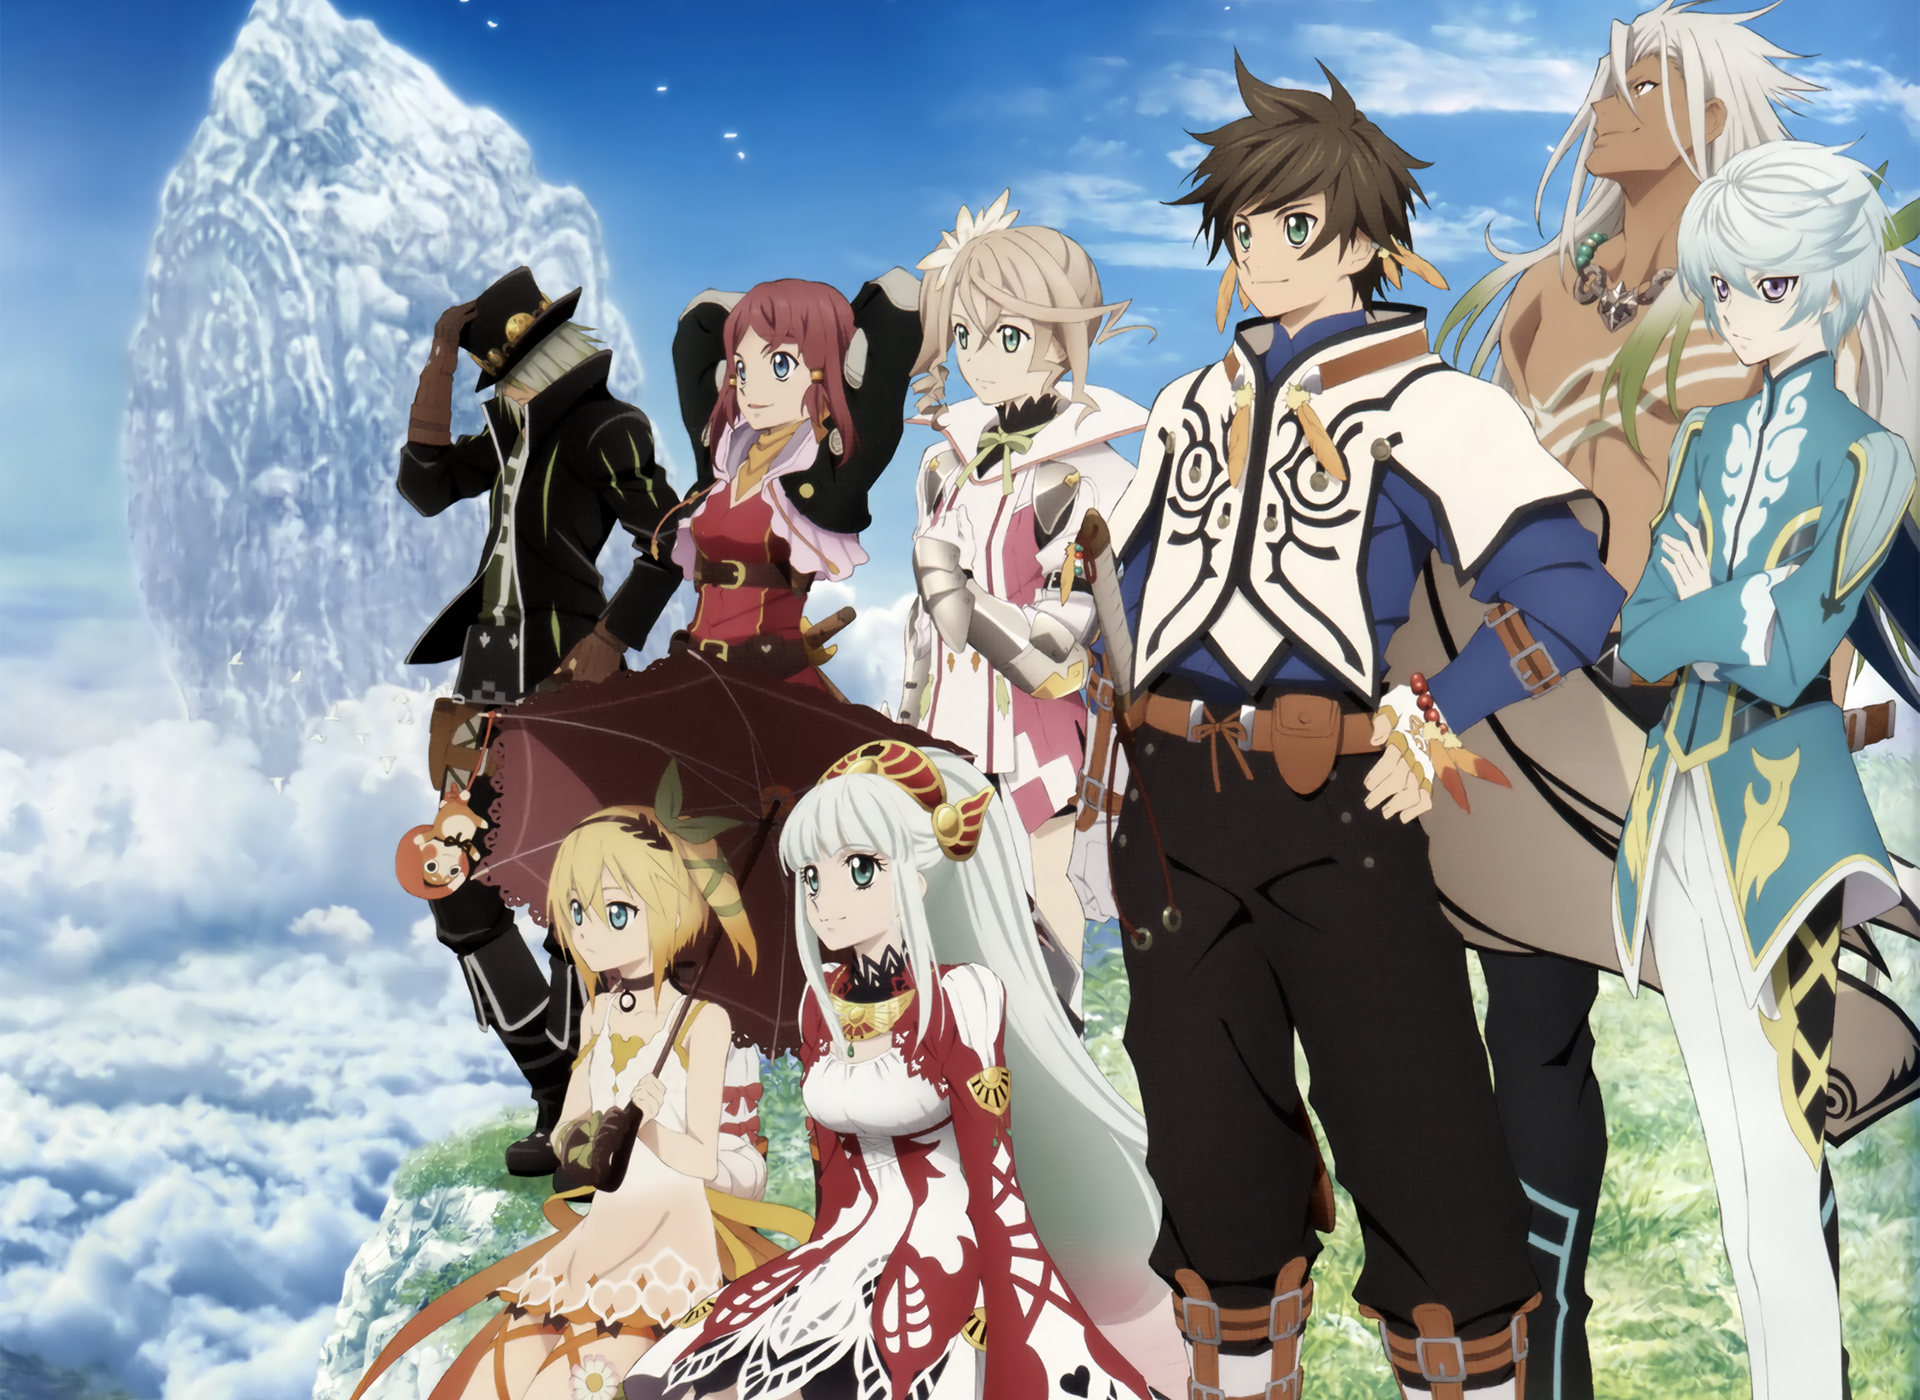 Tales Of Zestiria The X, Tv Series - Tales Of Zestiria The X 2016 , HD Wallpaper & Backgrounds